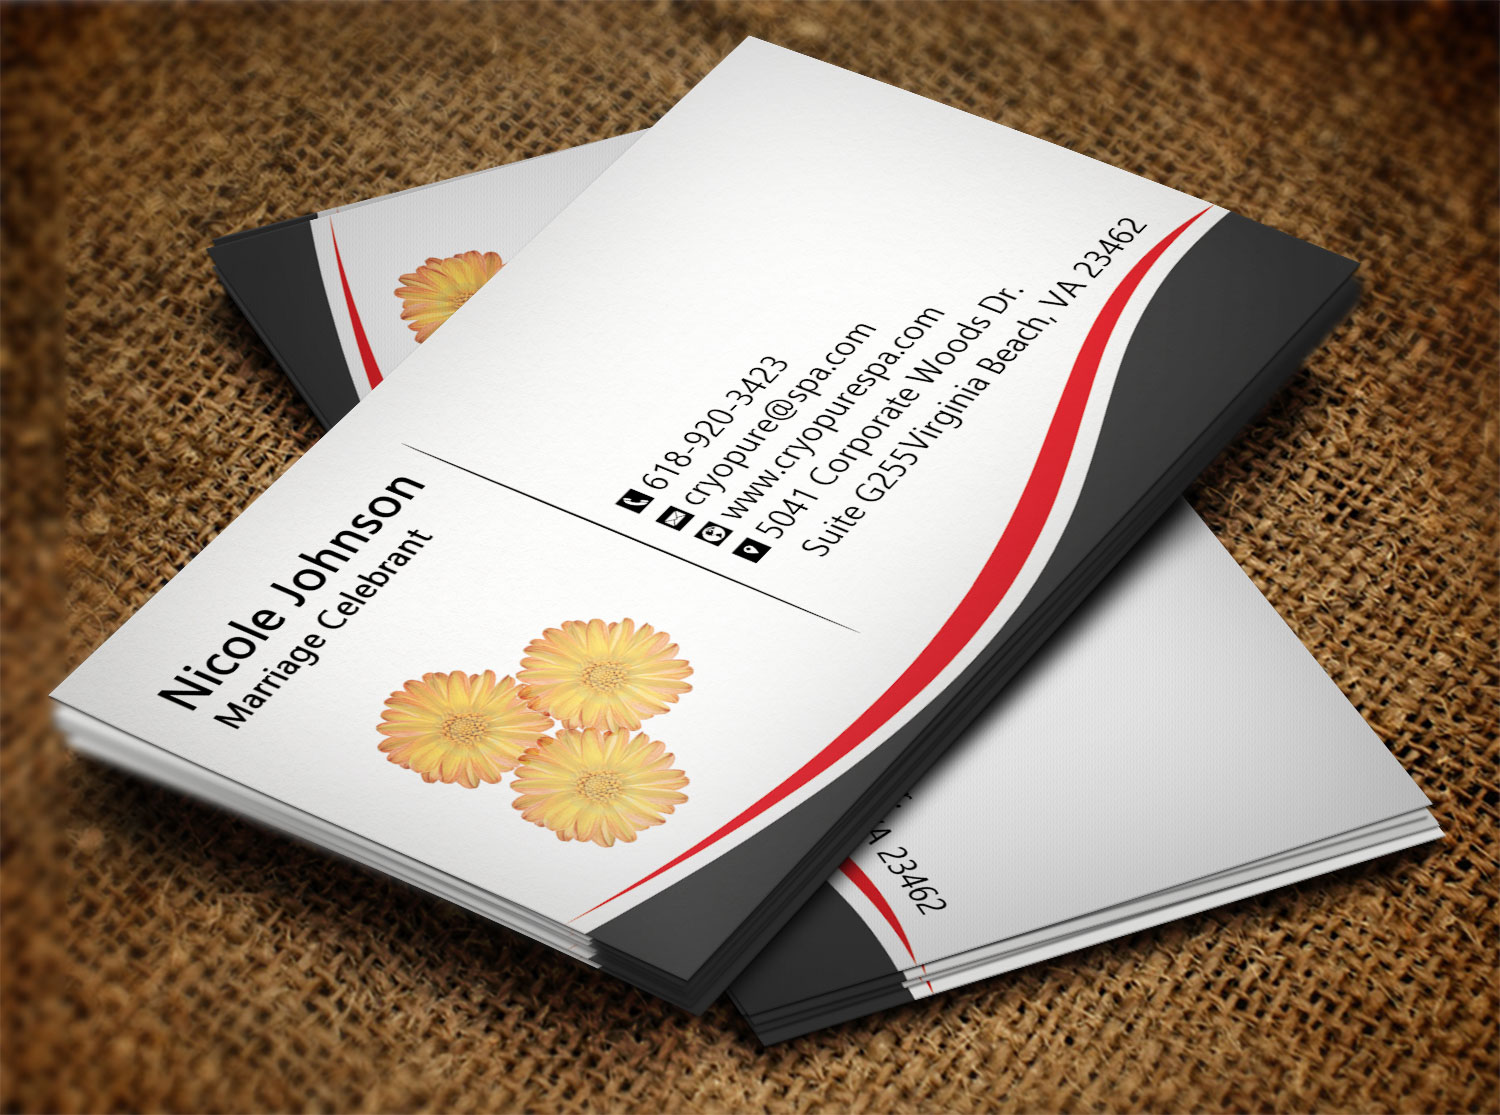 Business card design for northern beaches conveyancing service by business card design by creation lanka for northern beaches conveyancing service design 9211224 reheart Choice Image